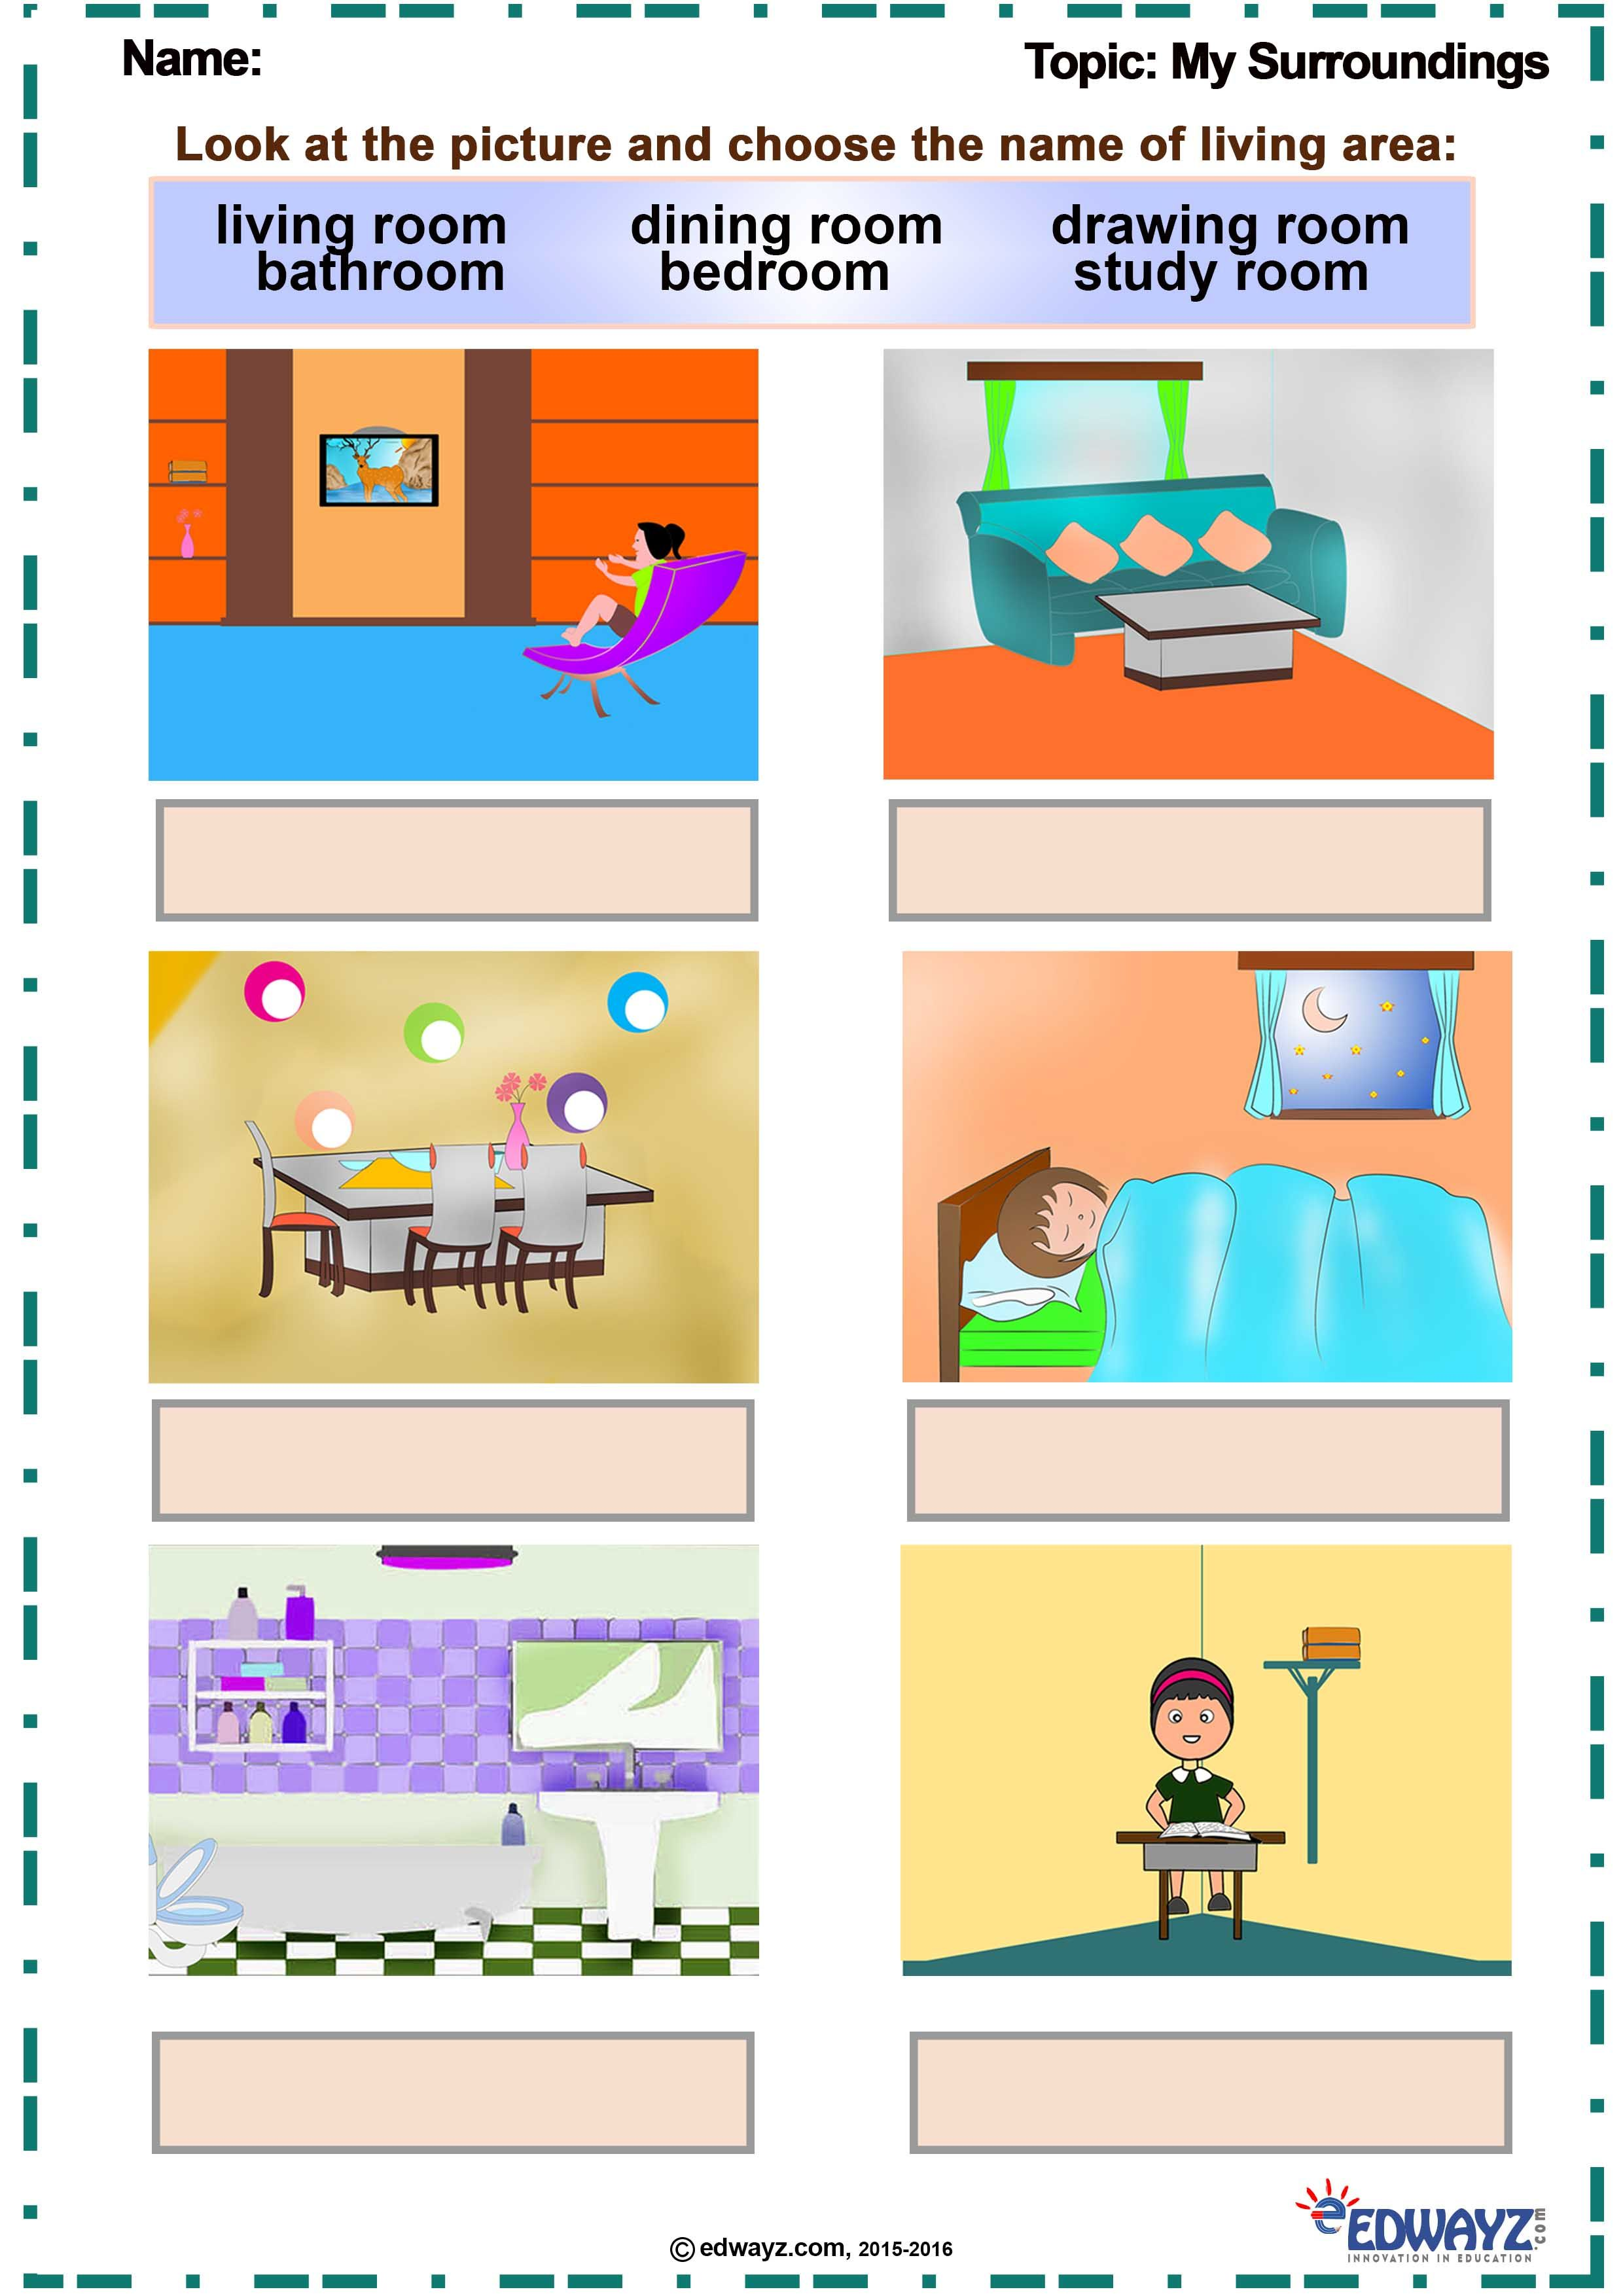 Worksheets_Class-1_My Surroundings   Worksheets for class 1 [ 3508 x 2480 Pixel ]